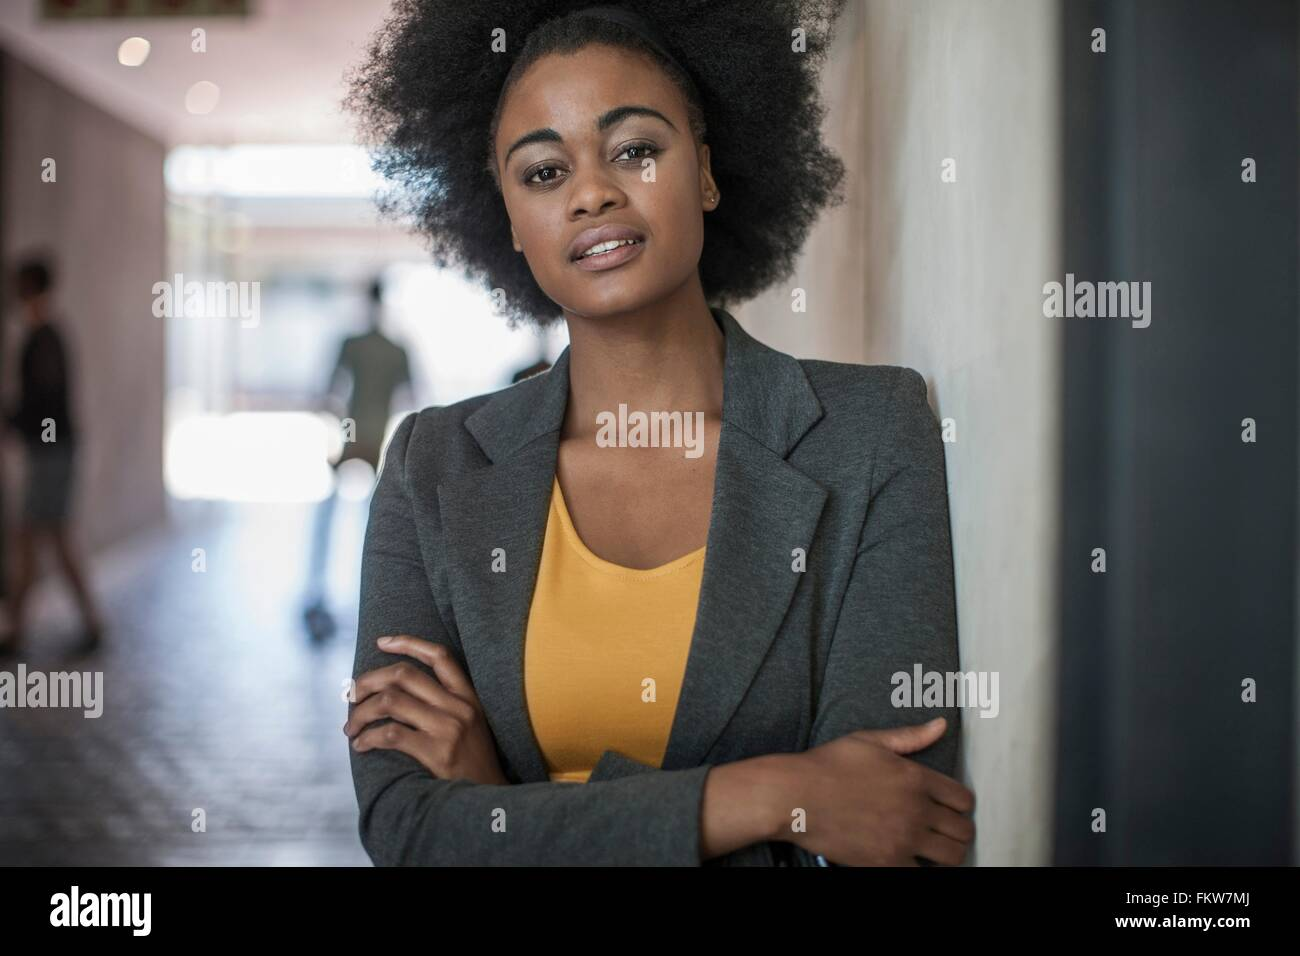 Portrait of confident young businesswomen leaning against office wall - Stock Image